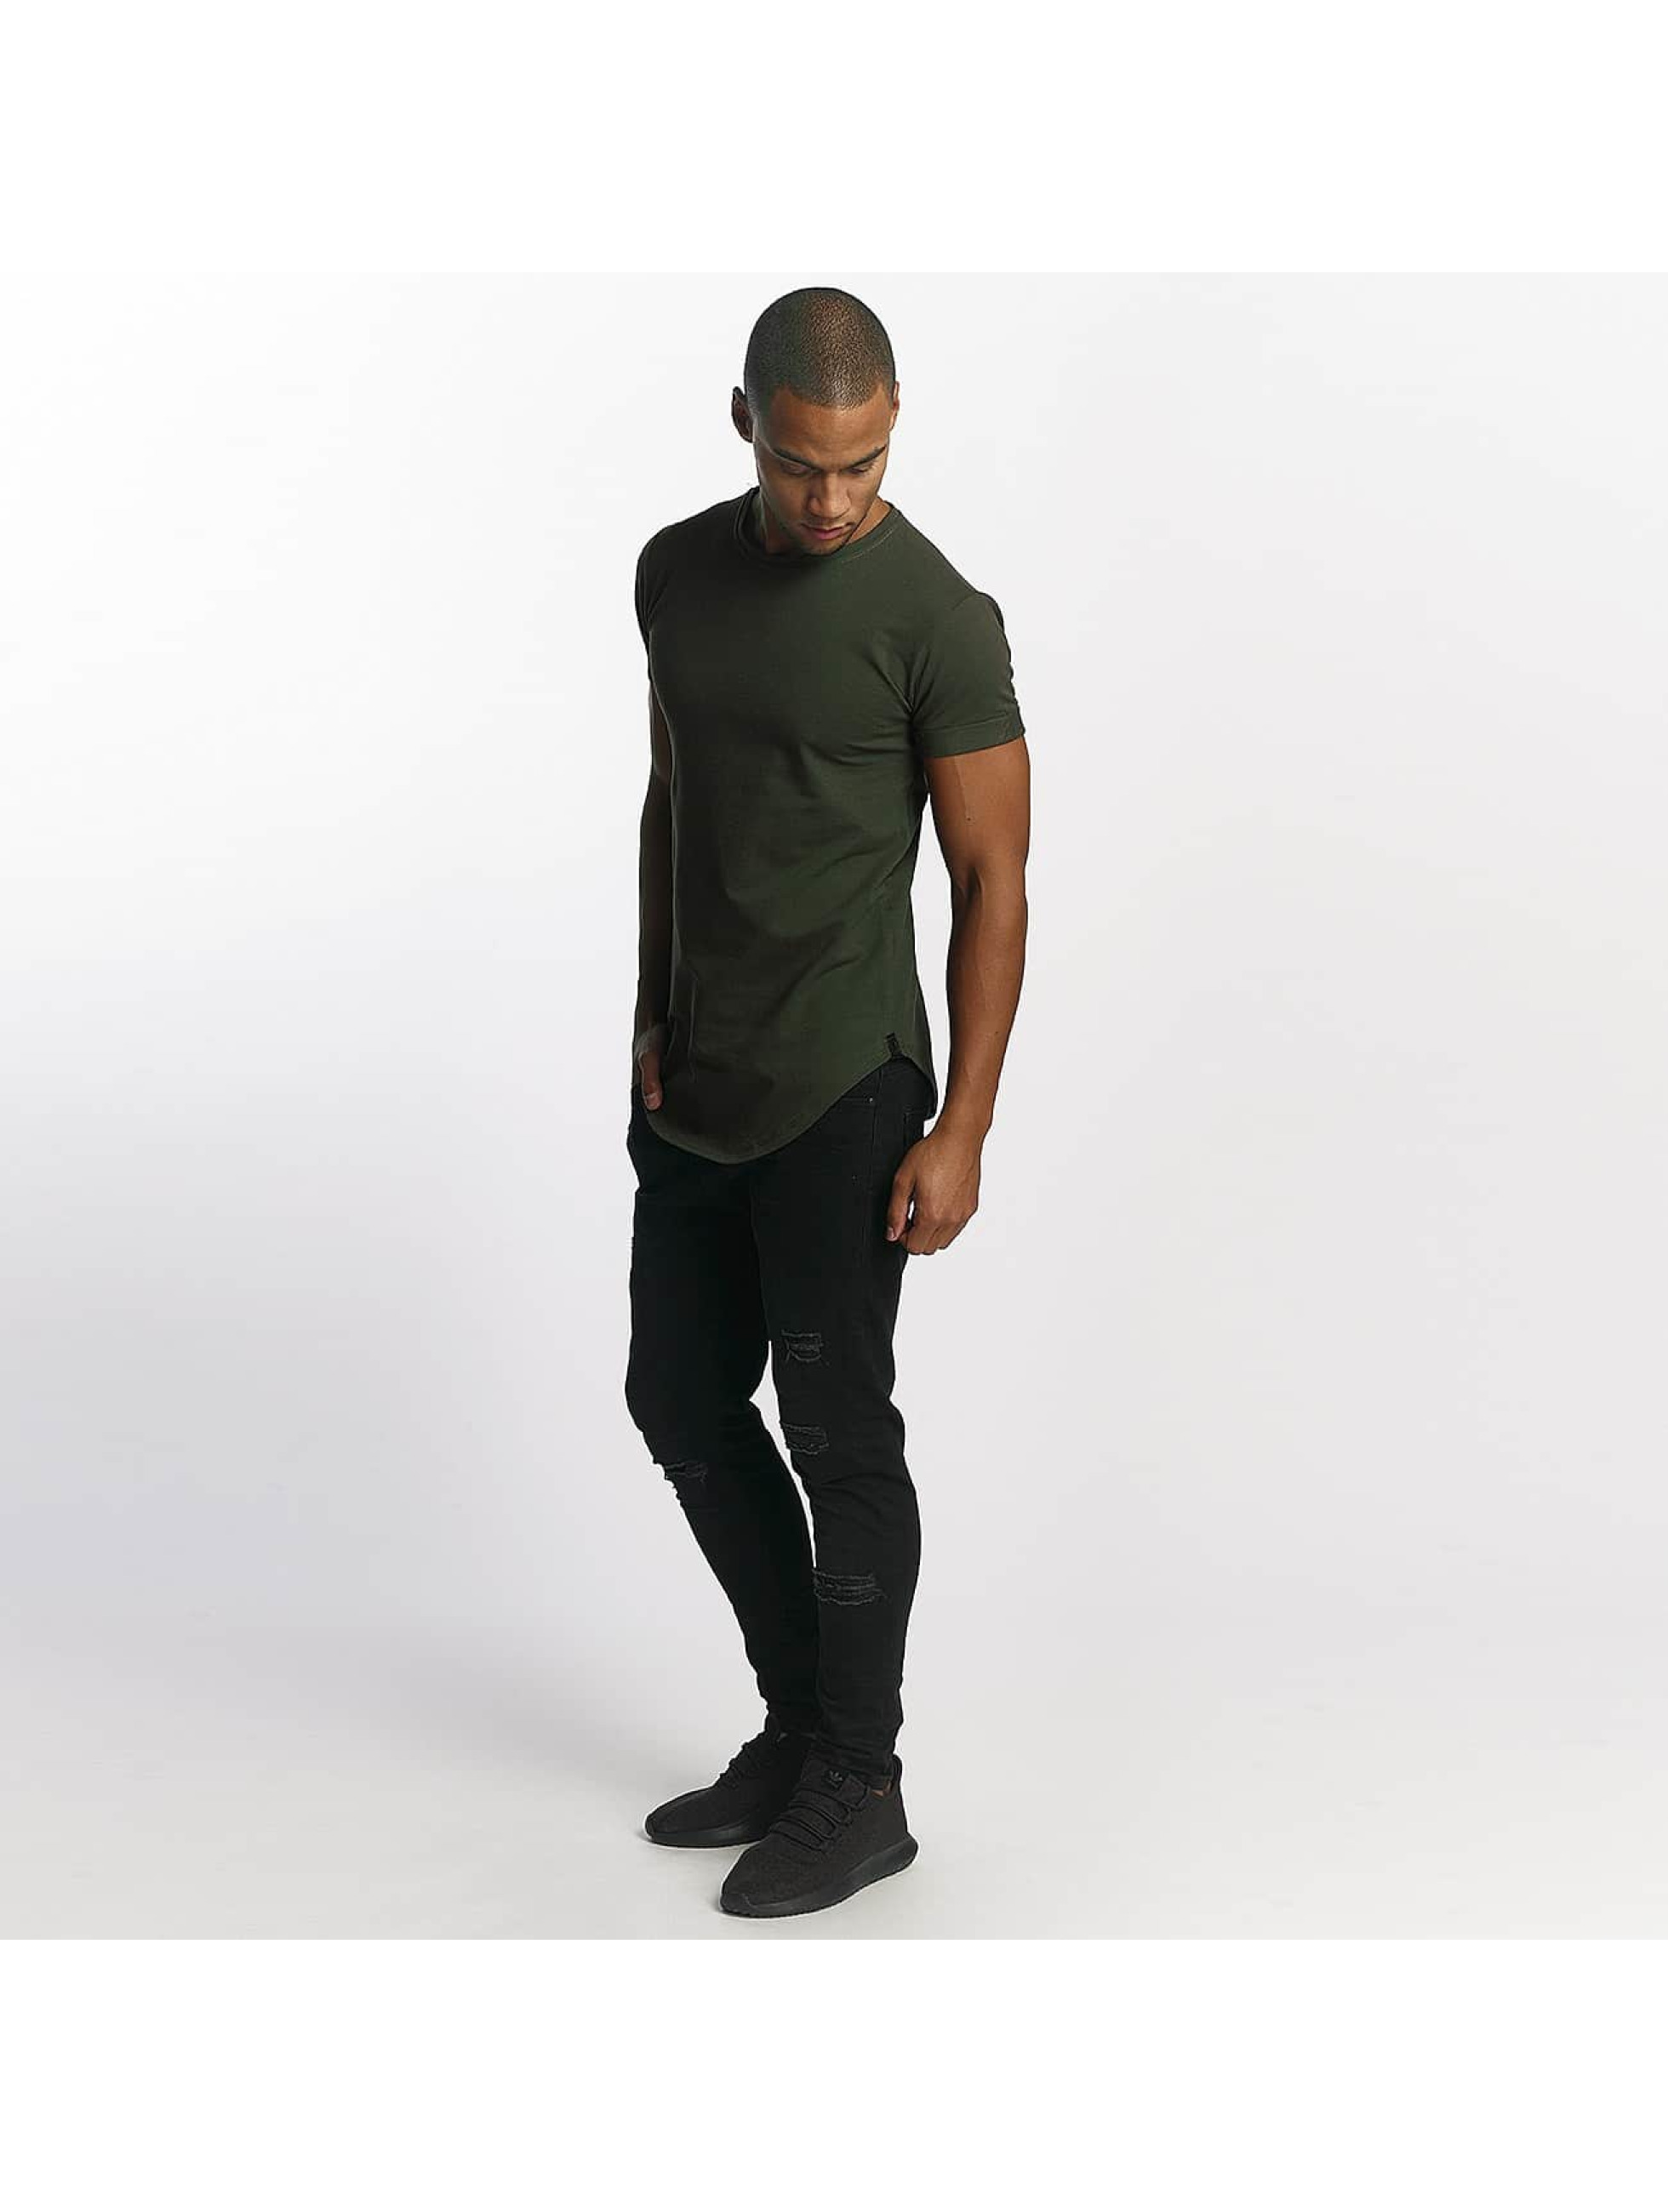 Uniplay t-shirt Max khaki